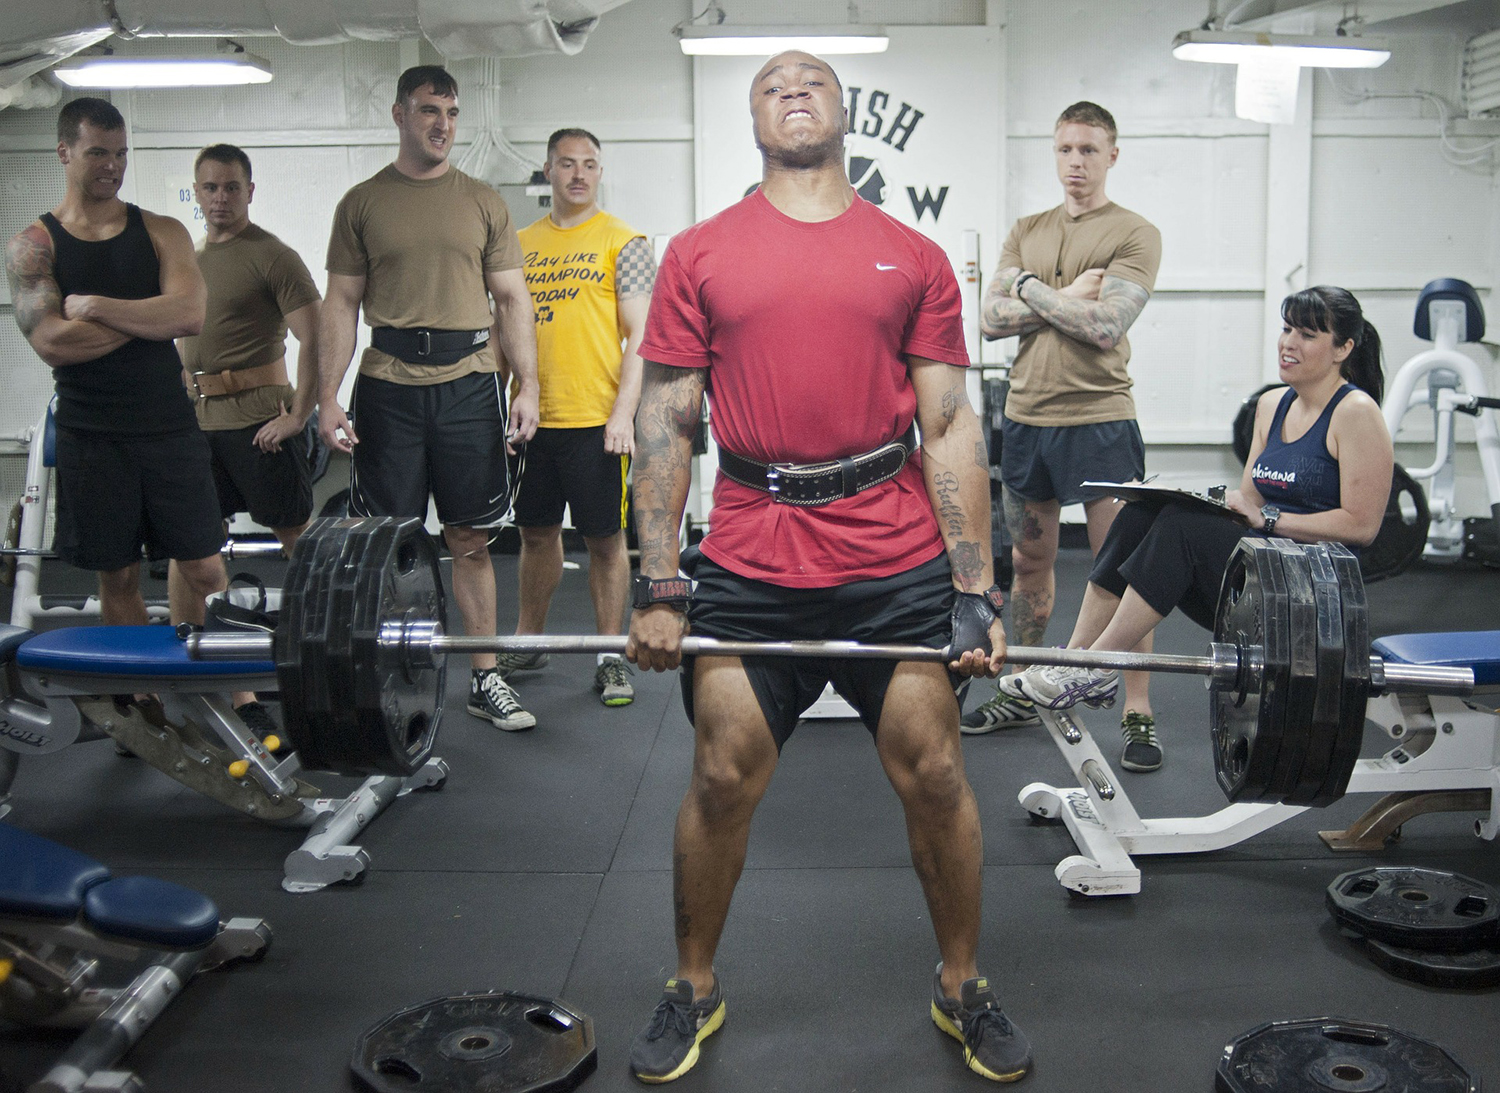 Weight Lifting Competition In The Gym